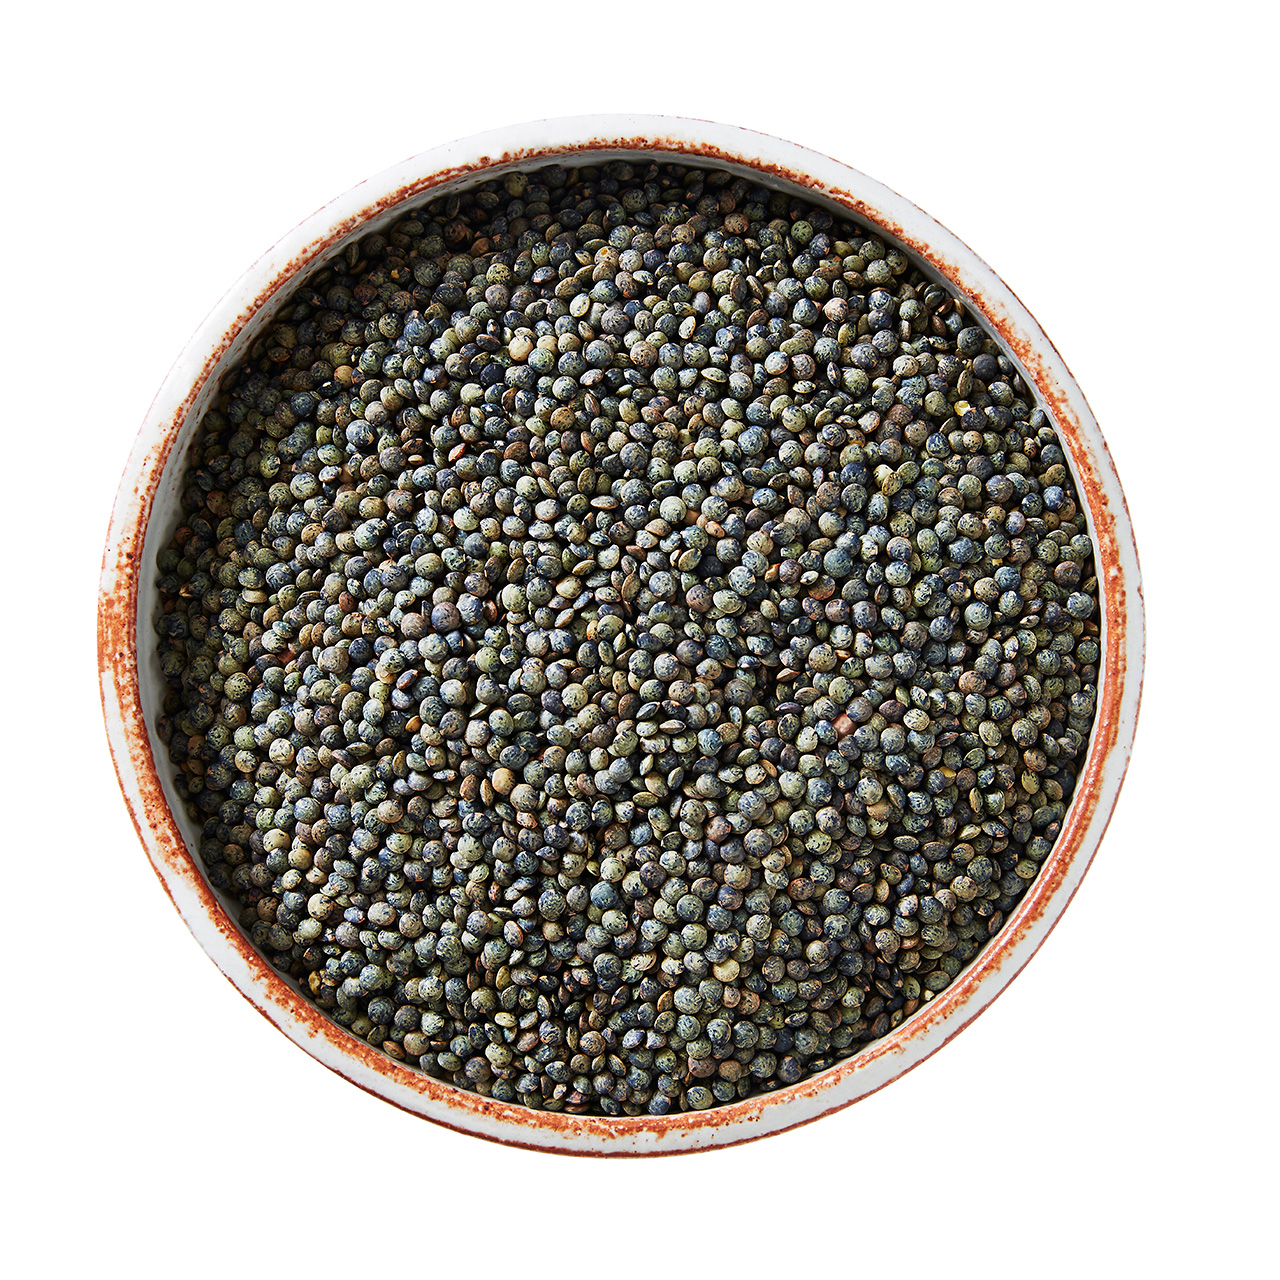 French Style Green Lentils